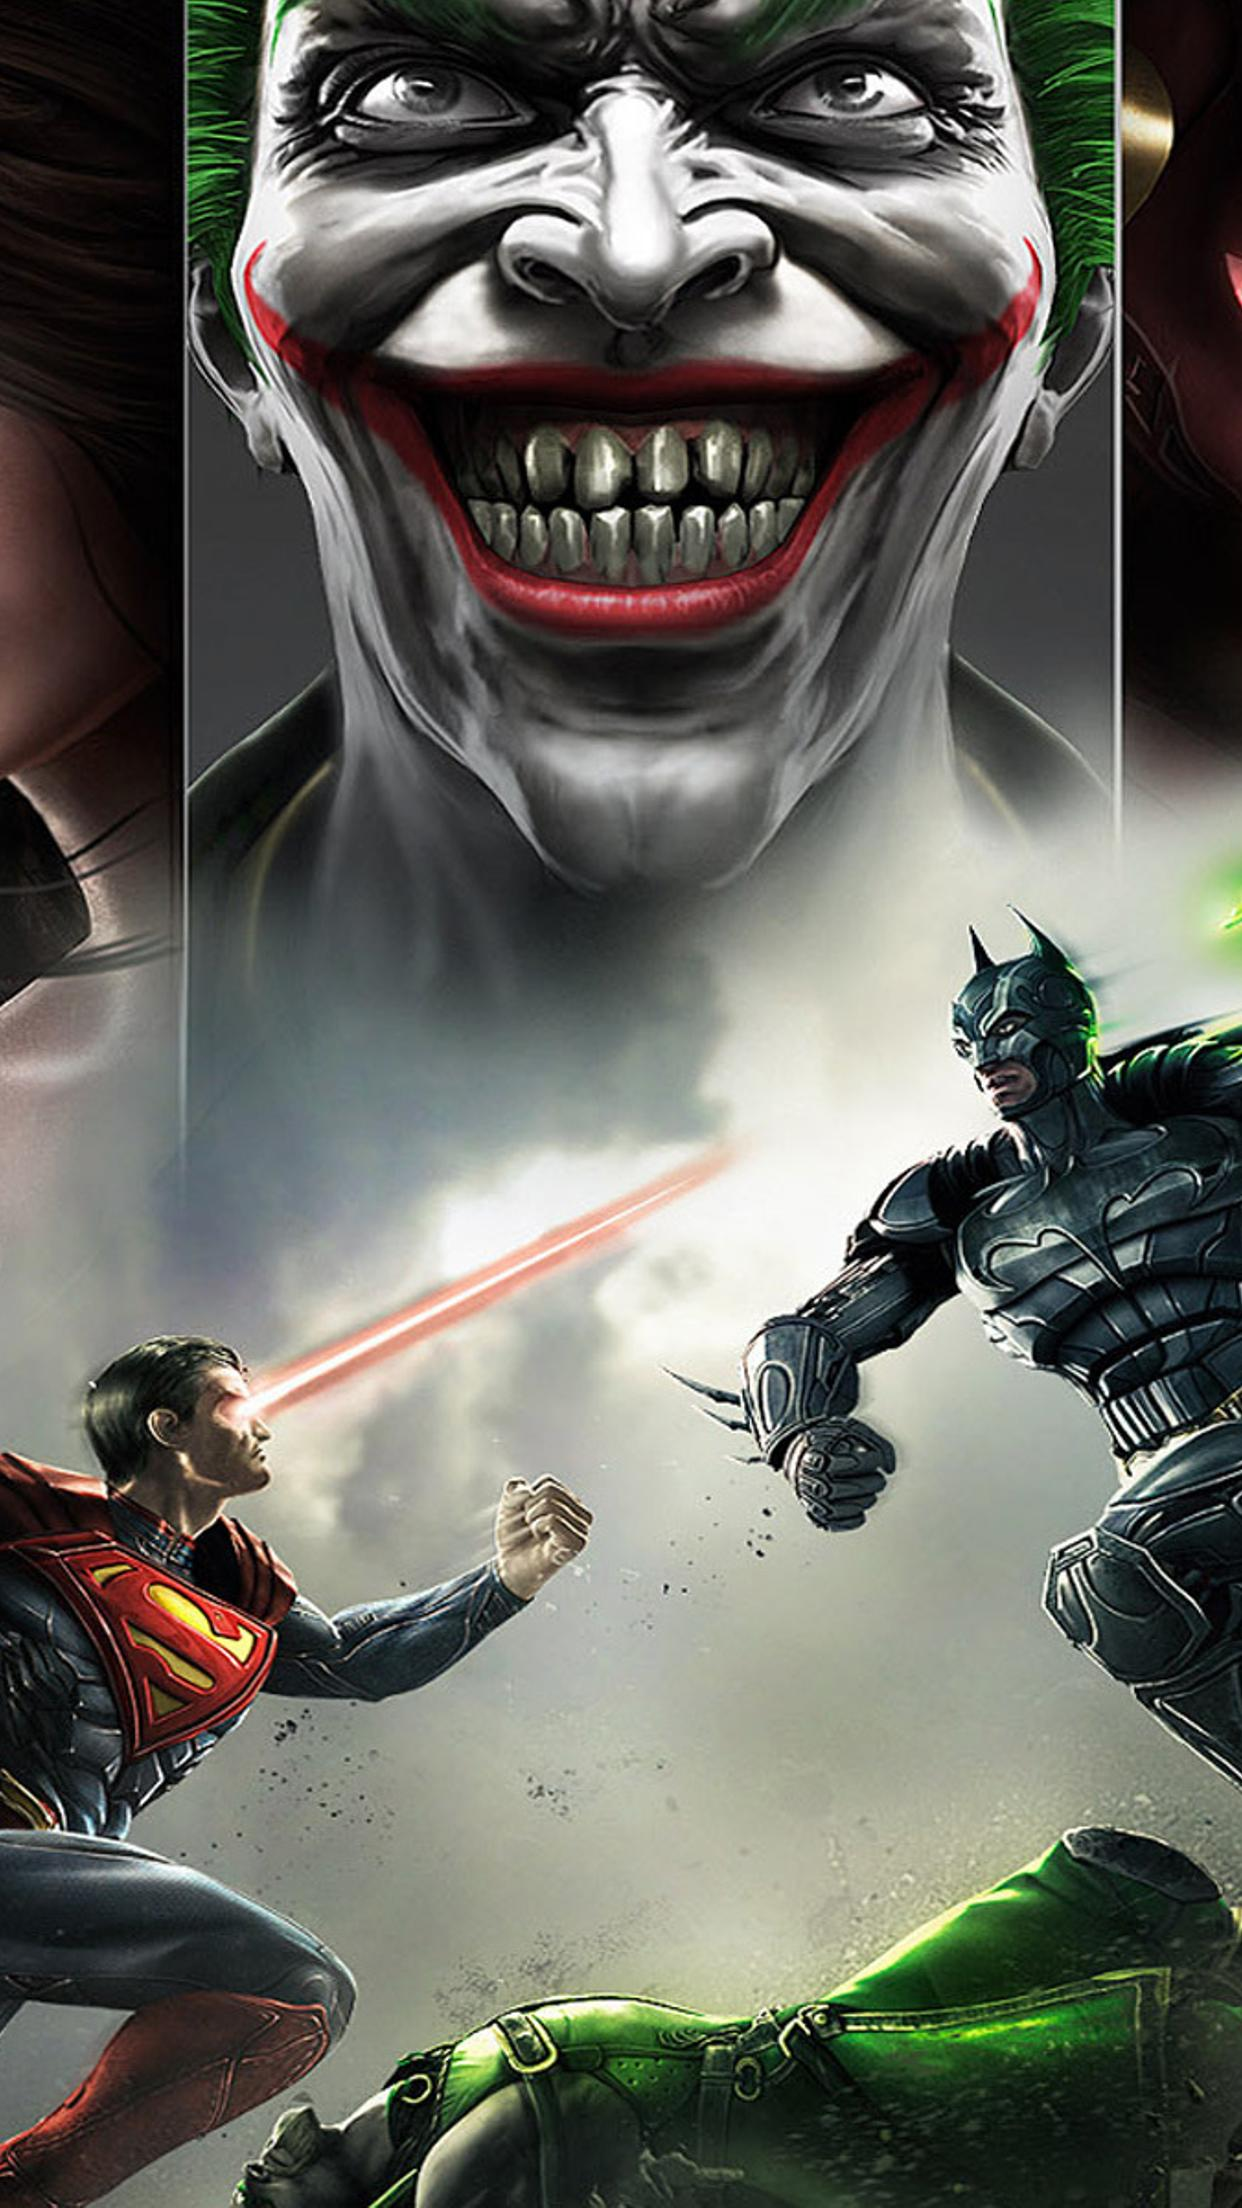 injustice: gods among us ps3 game hd wallpaper download 1242x2208